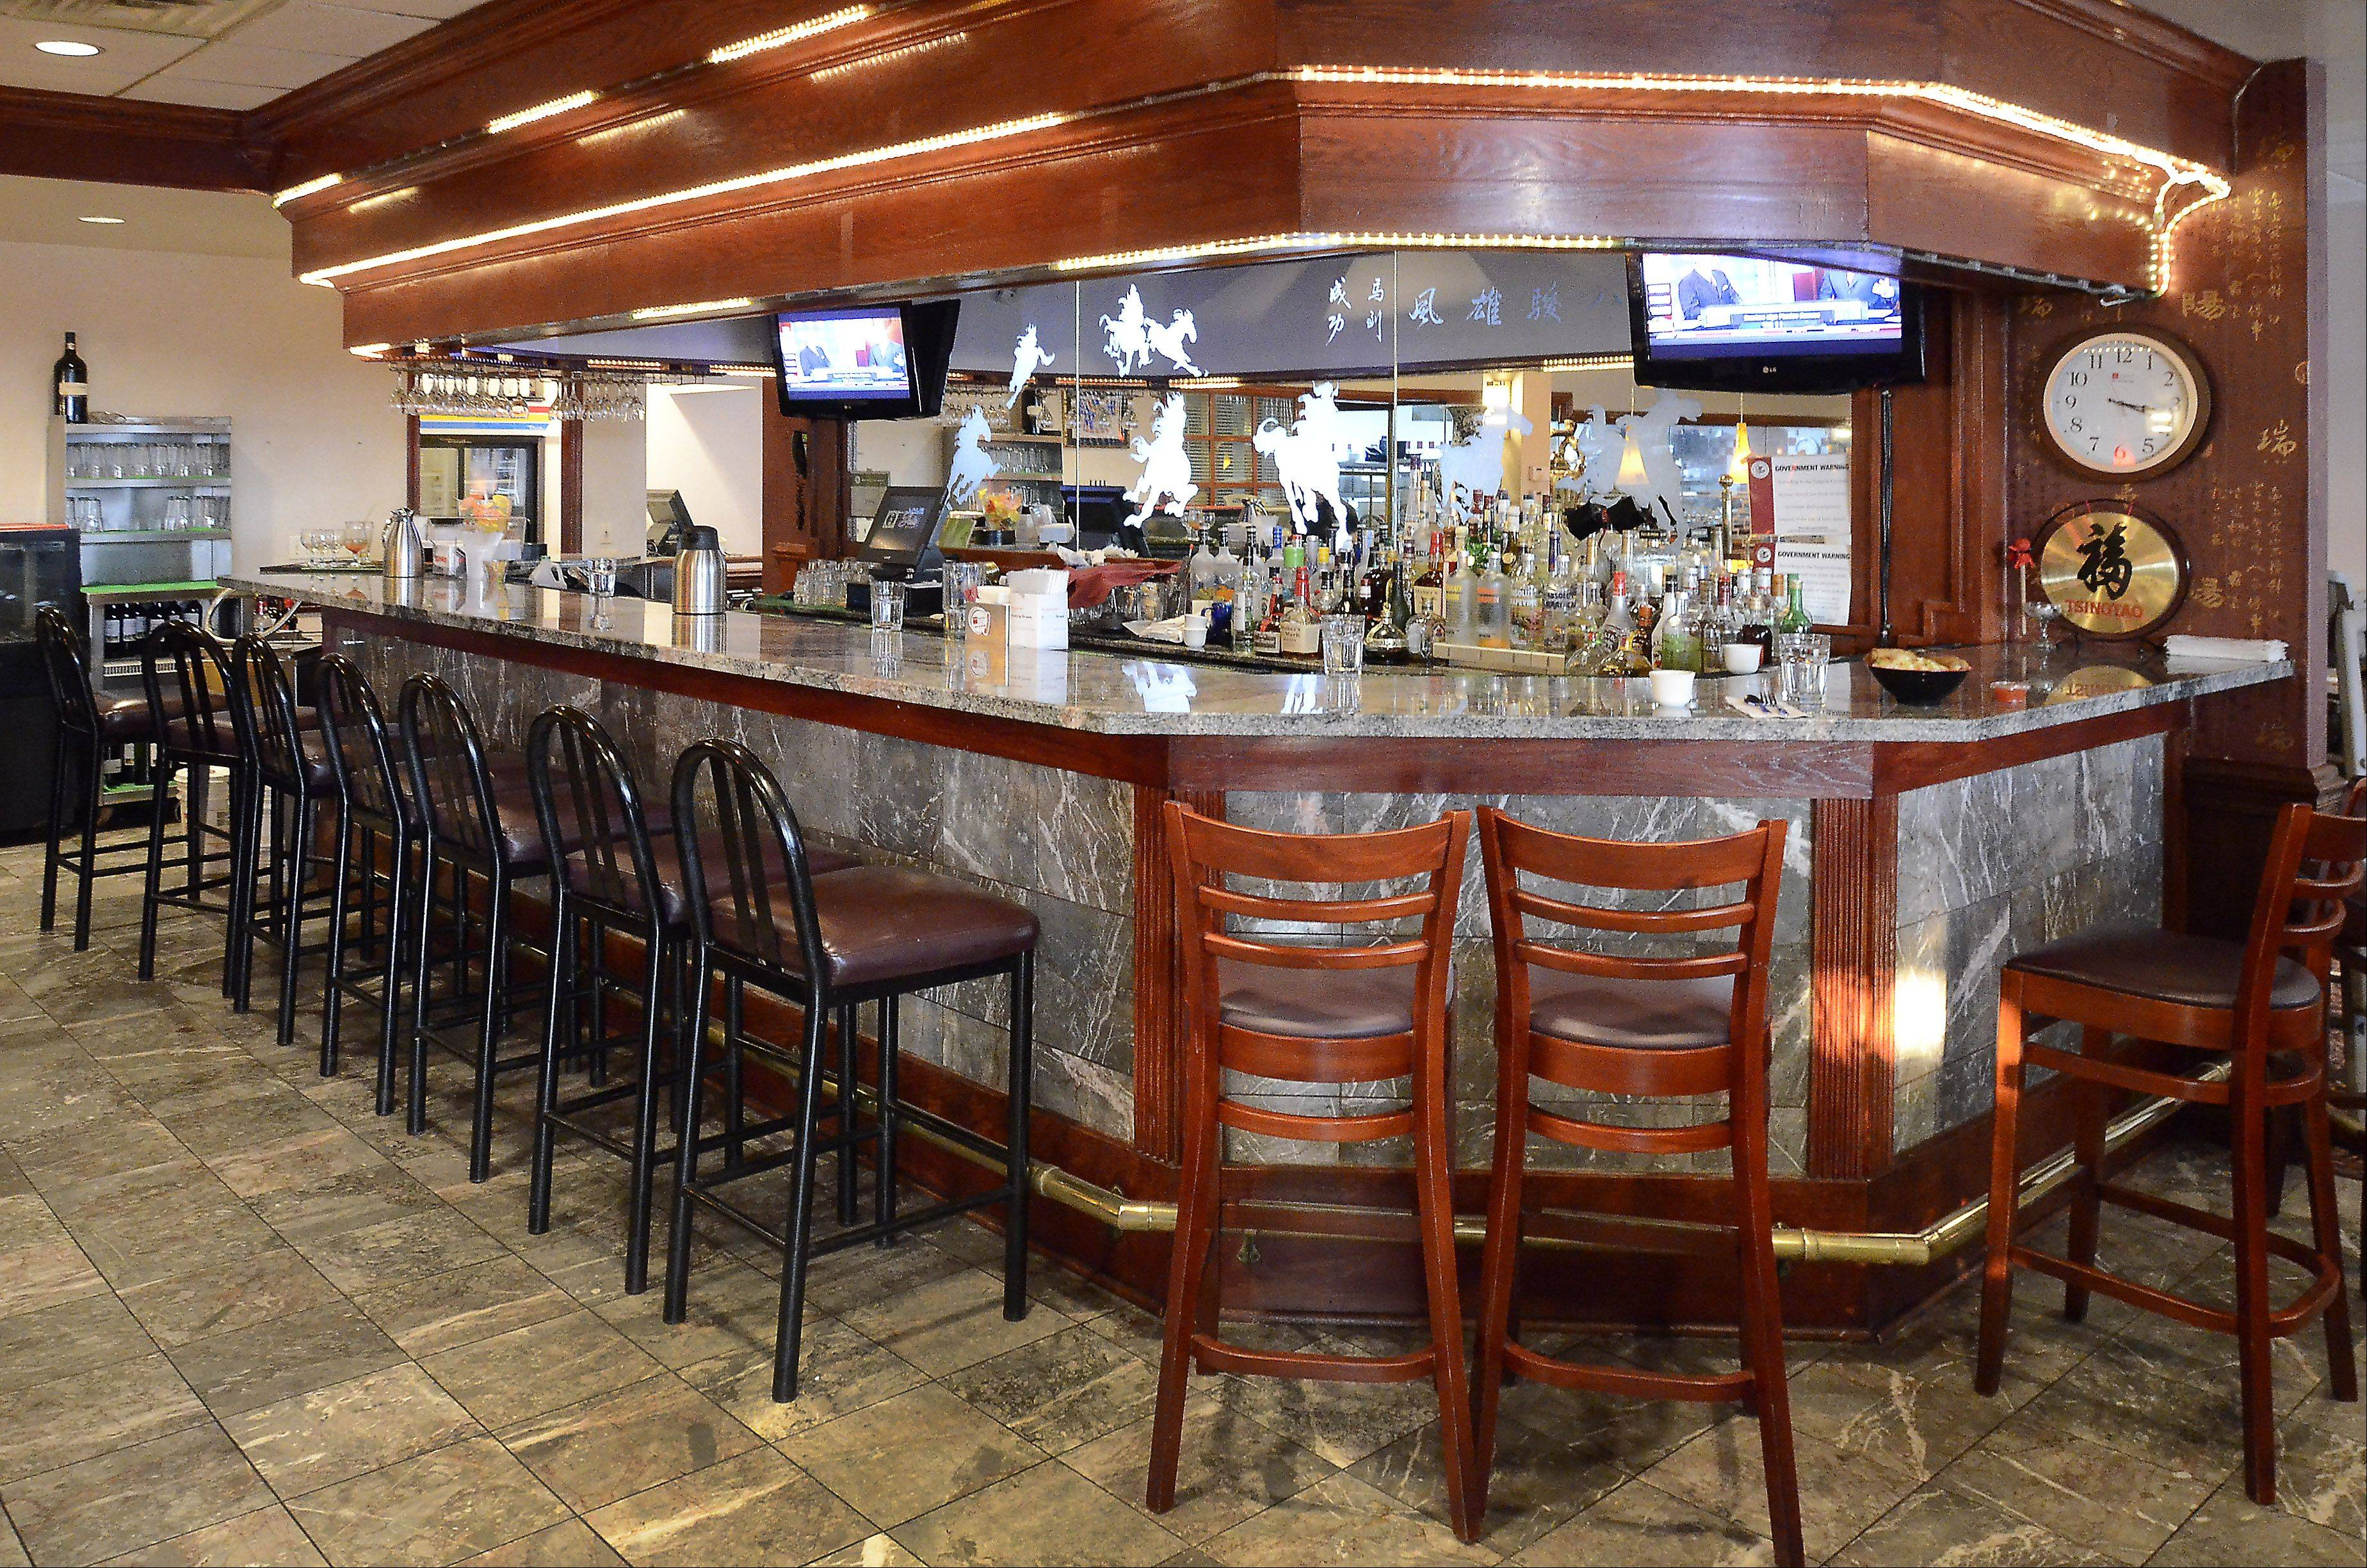 Stop for a drink at the bar before dinner at Yu's Mandarin in Schaumburg.